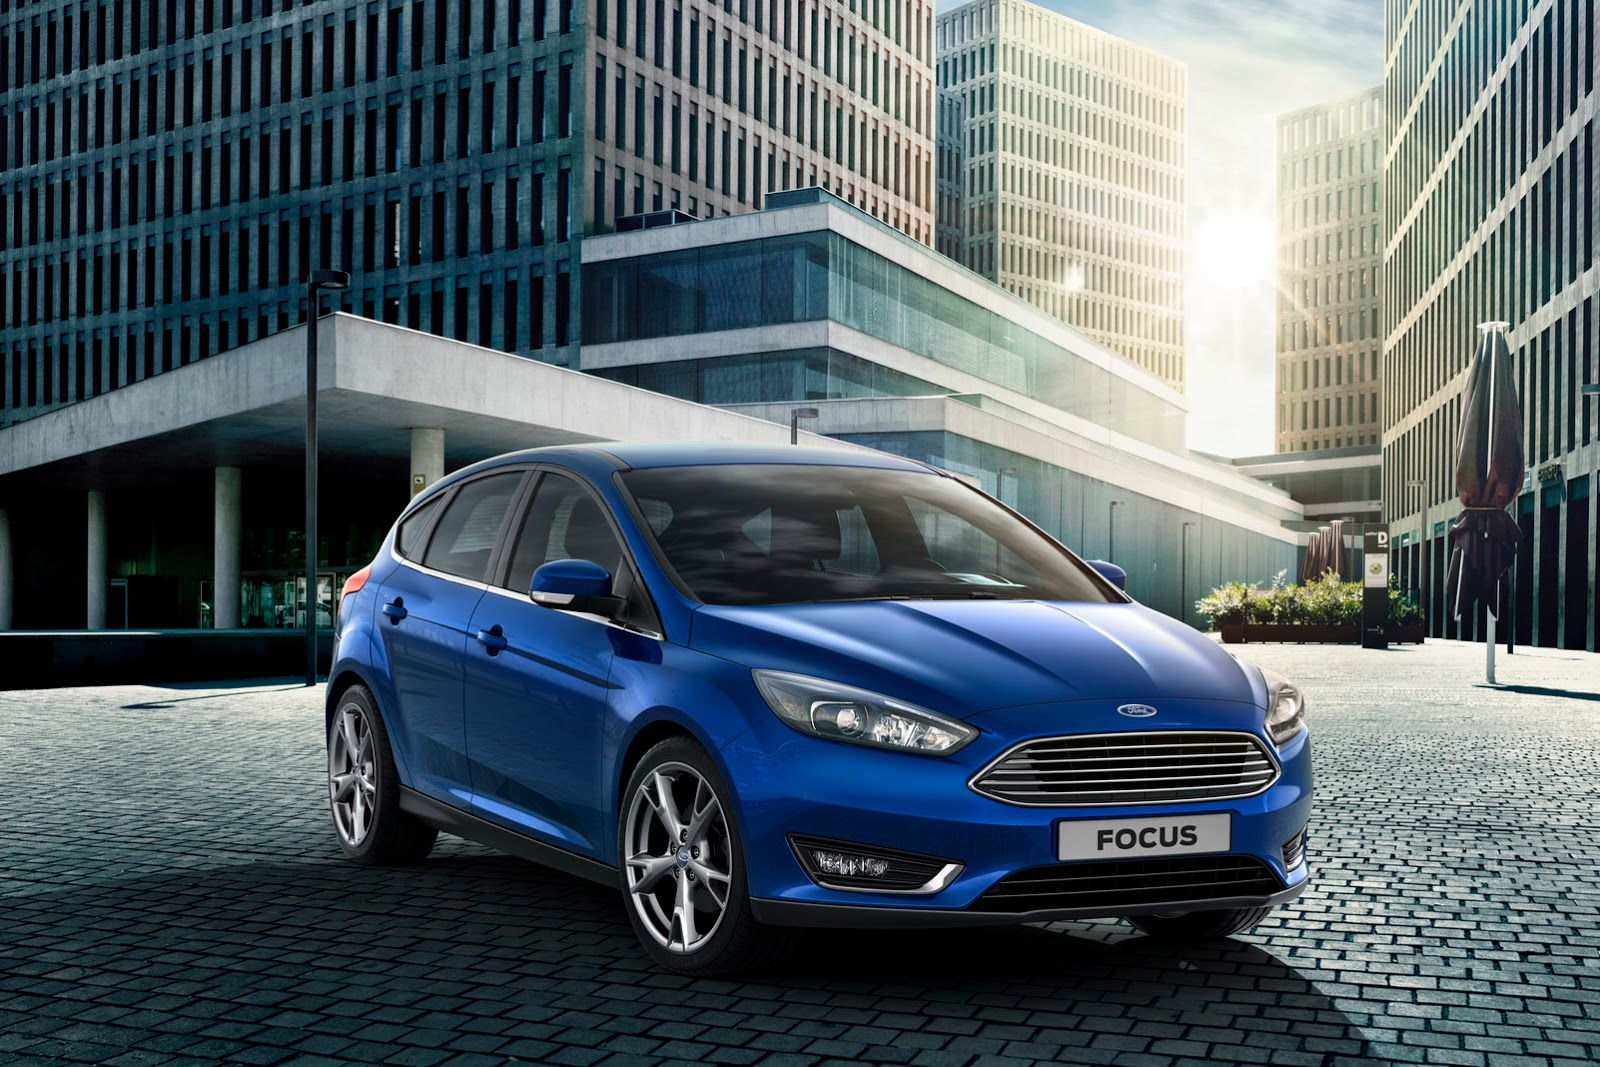 Ford Focus Facelift Price And Spec Costs From 13 995 Cars Uk